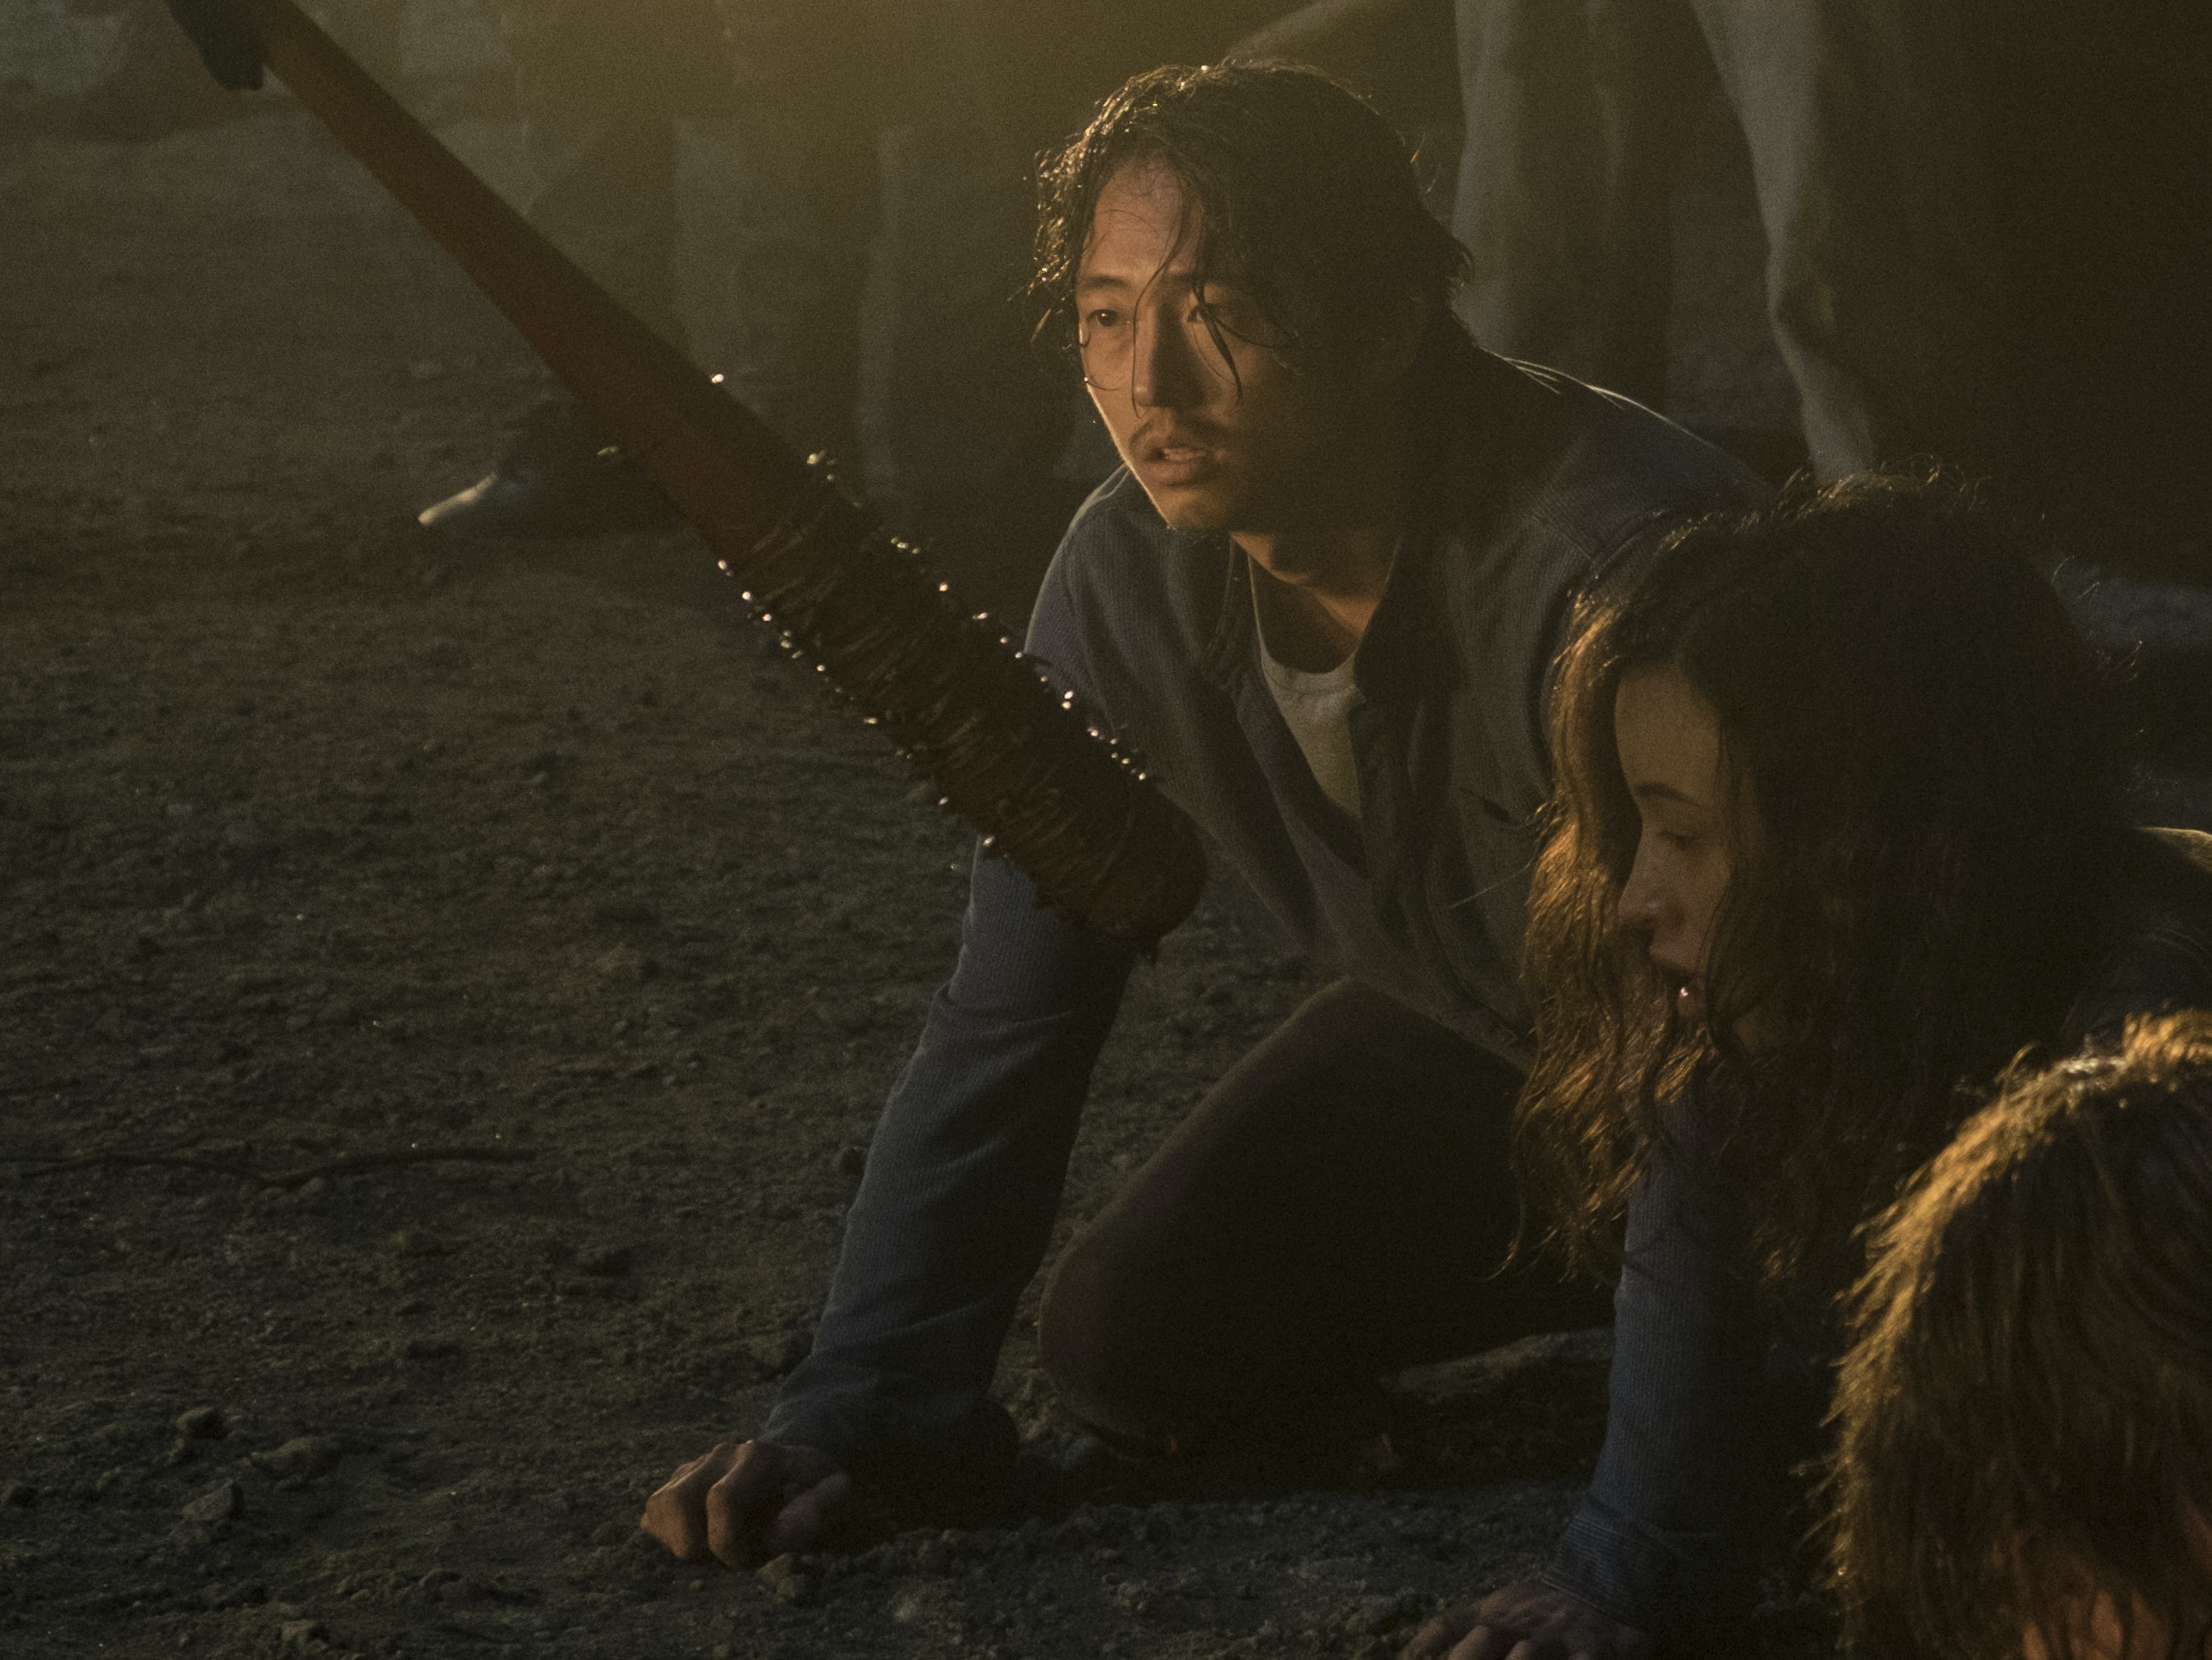 Glenn's Death Is a Blow to Asian-American Representation